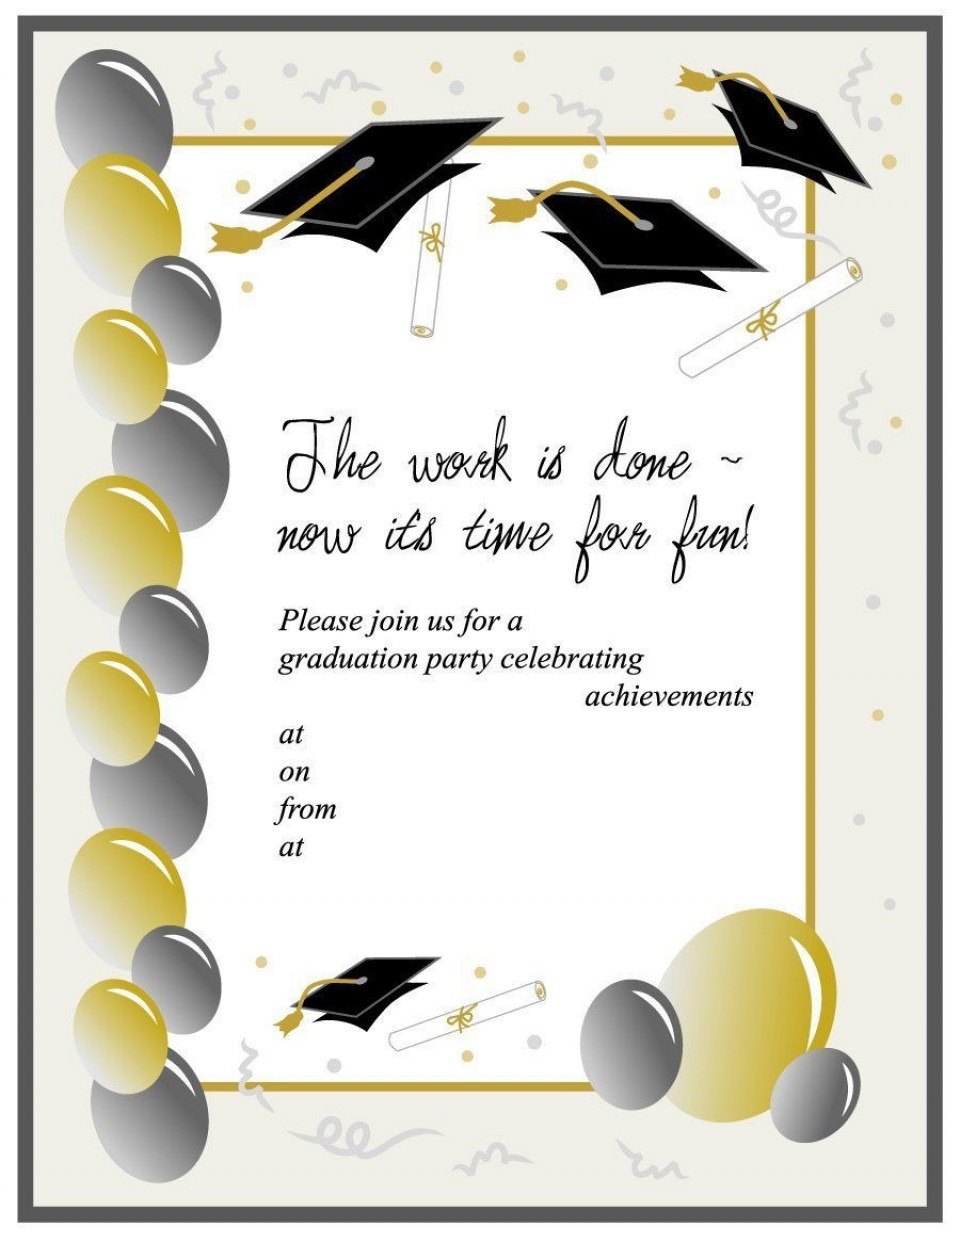 005 Stirring Microsoft Word Graduation Party Invitation Template High Resolution 960